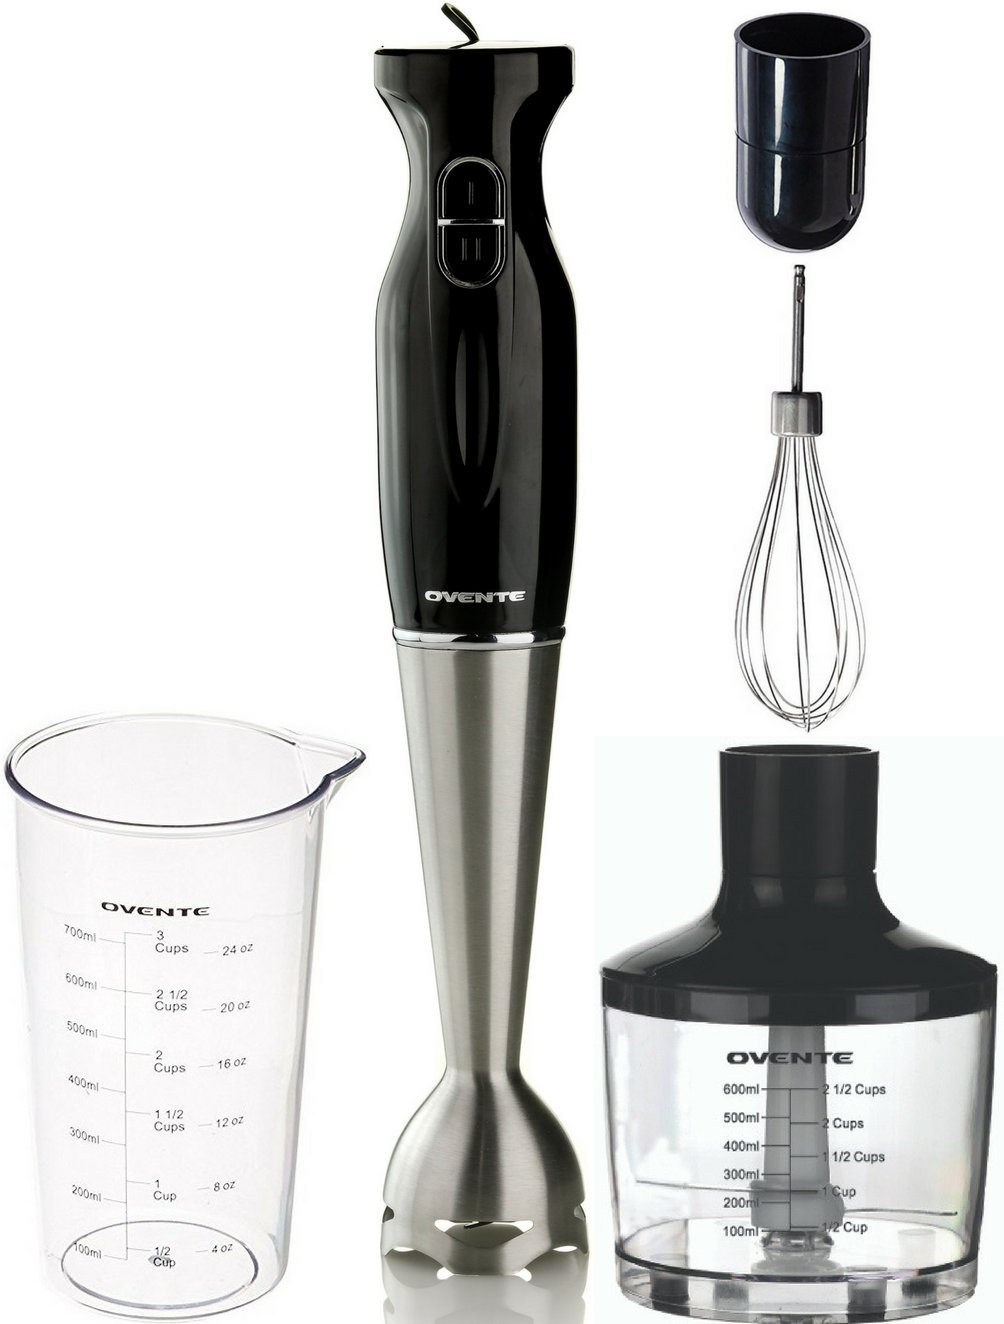 Ovente Multi-Purpose Immersion Hand Blender Set – 300-Watts, 2-Speed – Stainless Steel Blades and Detachable Shaft – Includes Food Chopper, Egg Whisk, and BPA-Free Beaker (24 oz) – Black (HS585B)